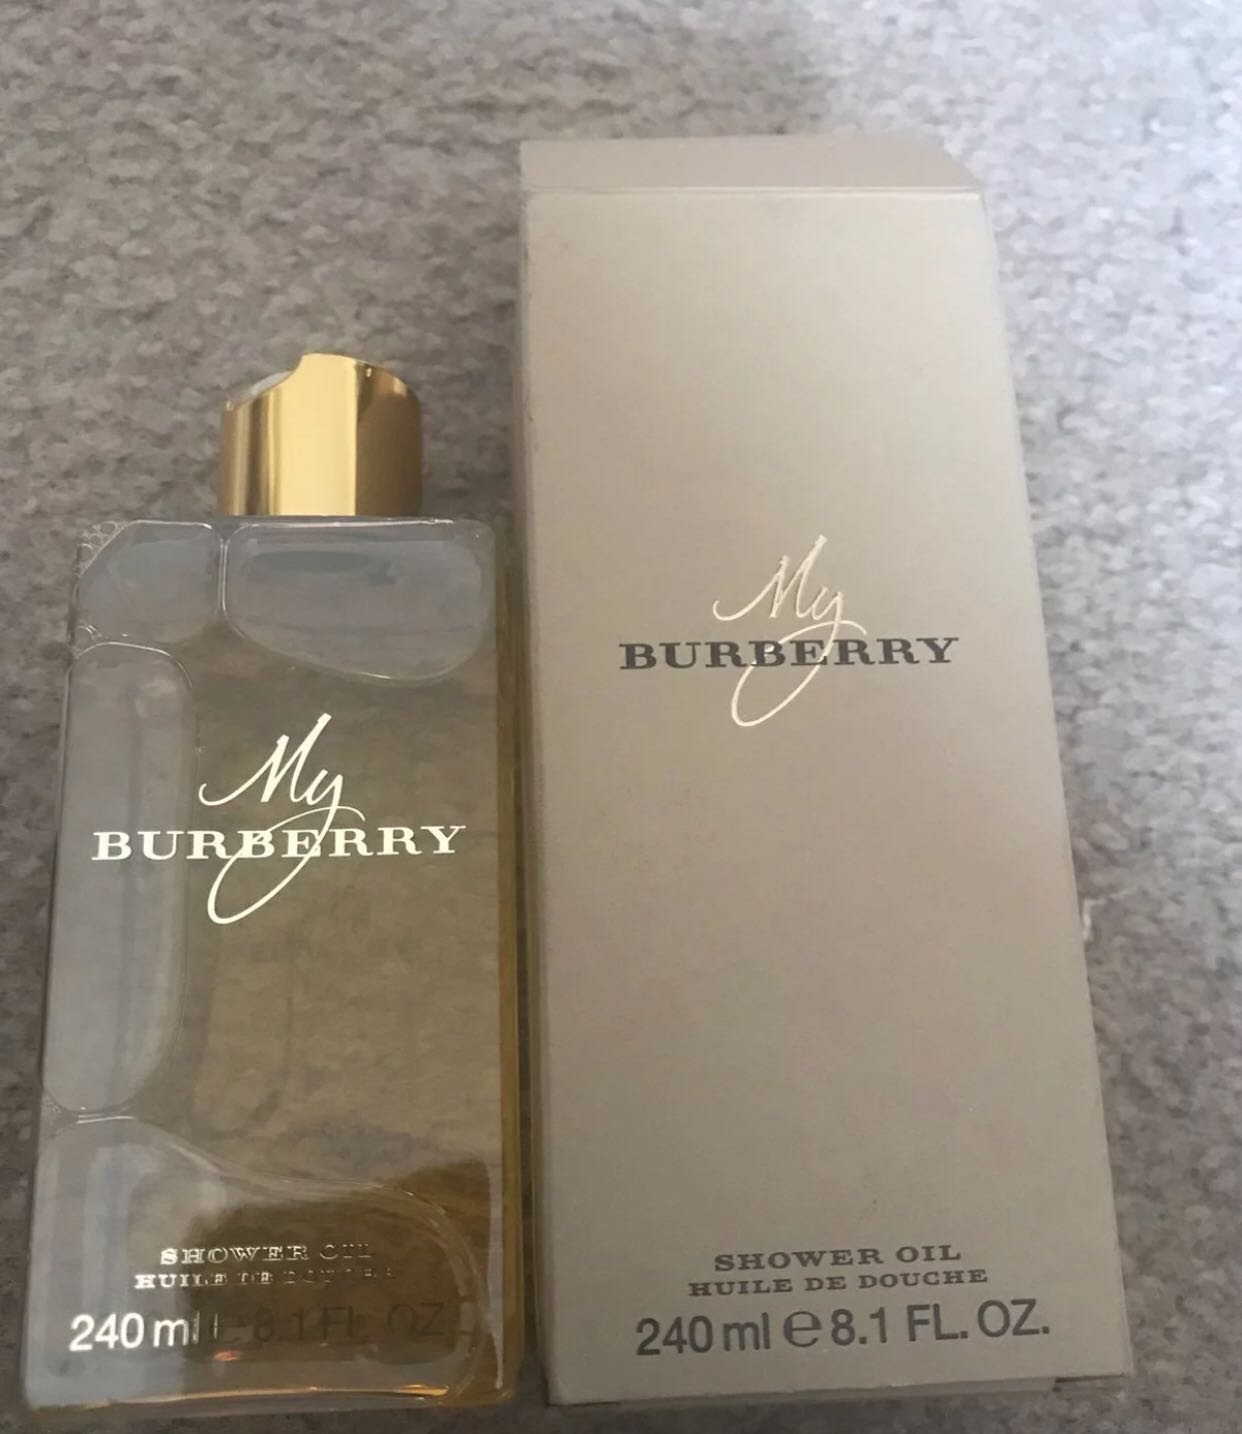 Burberry Oil